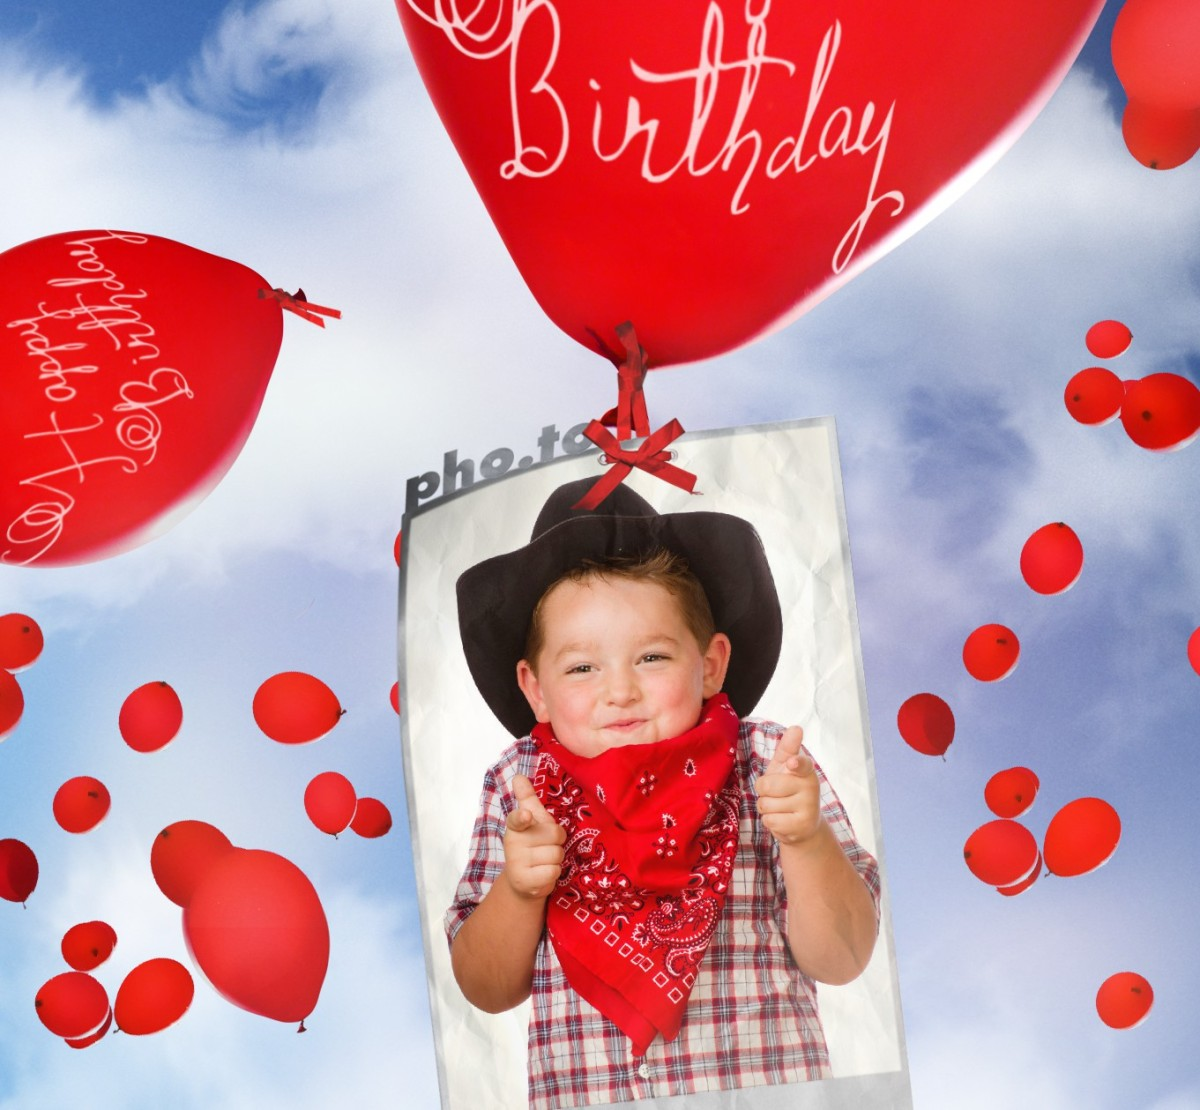 Birthday Card Maker Photo Editor With Flying Balloons Printable Template